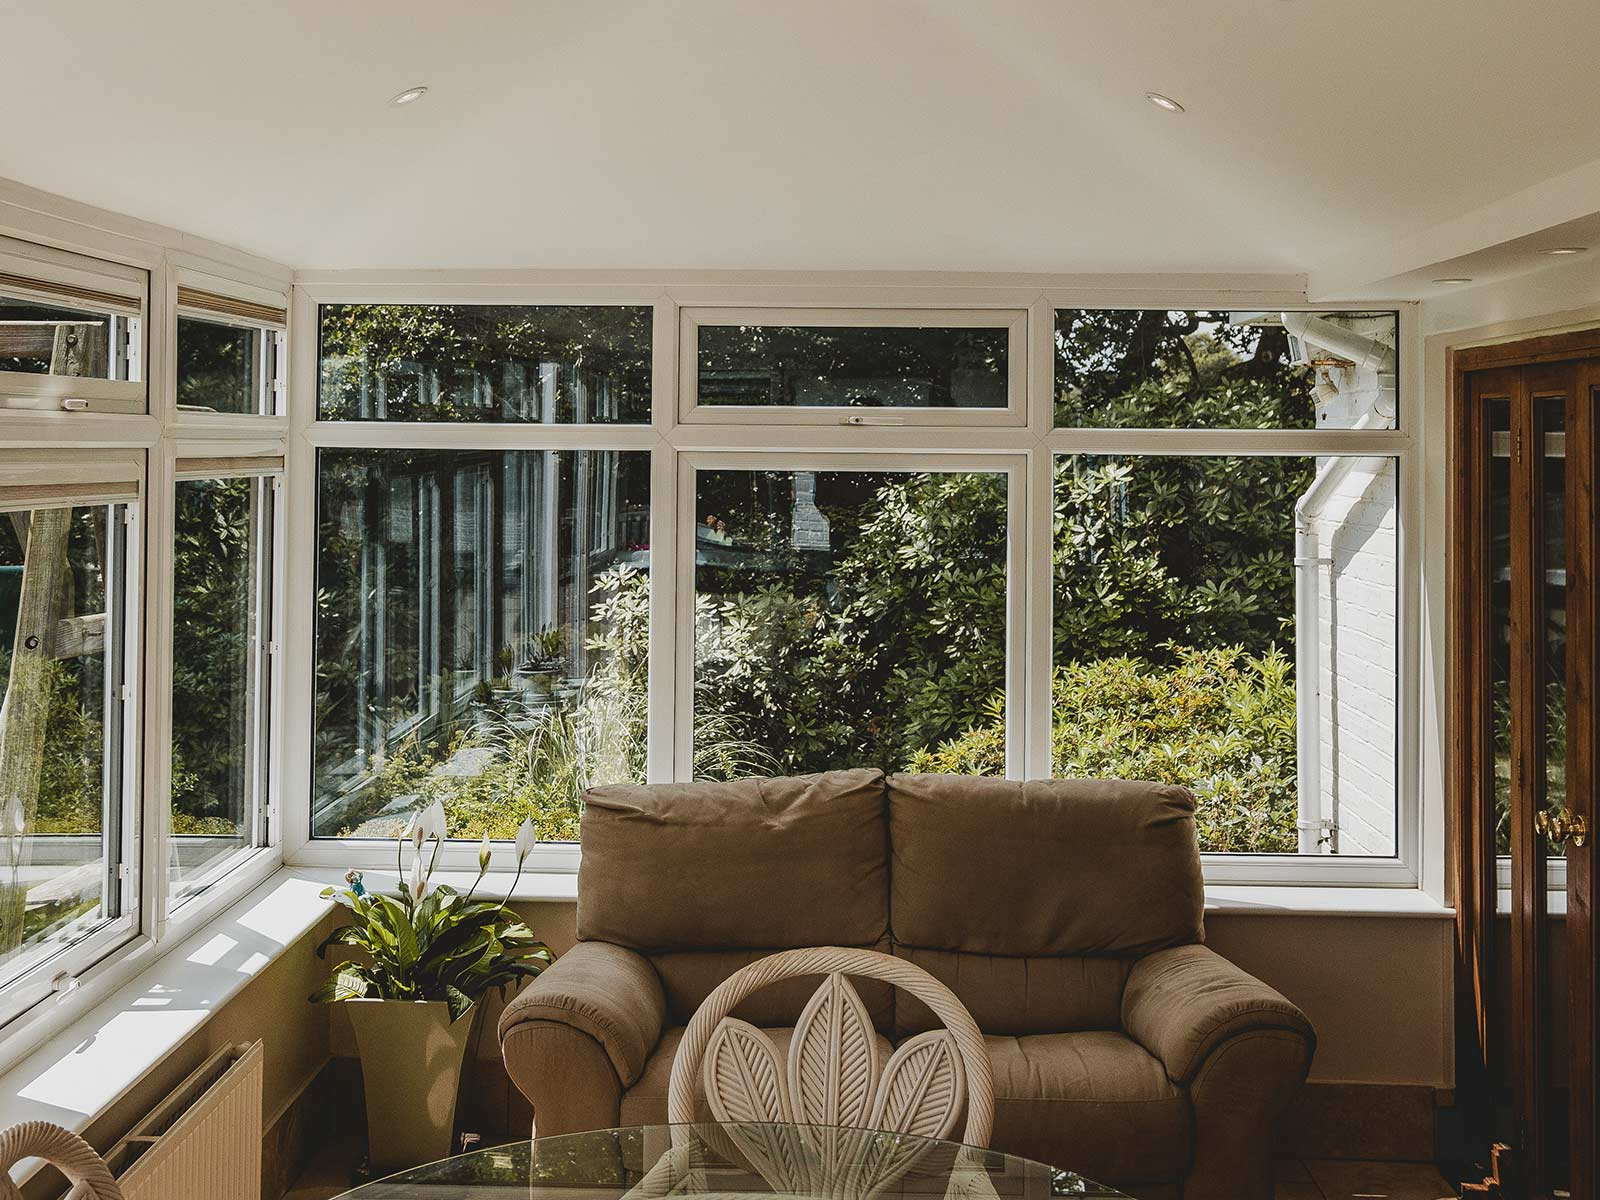 Interior shot of a conservatory